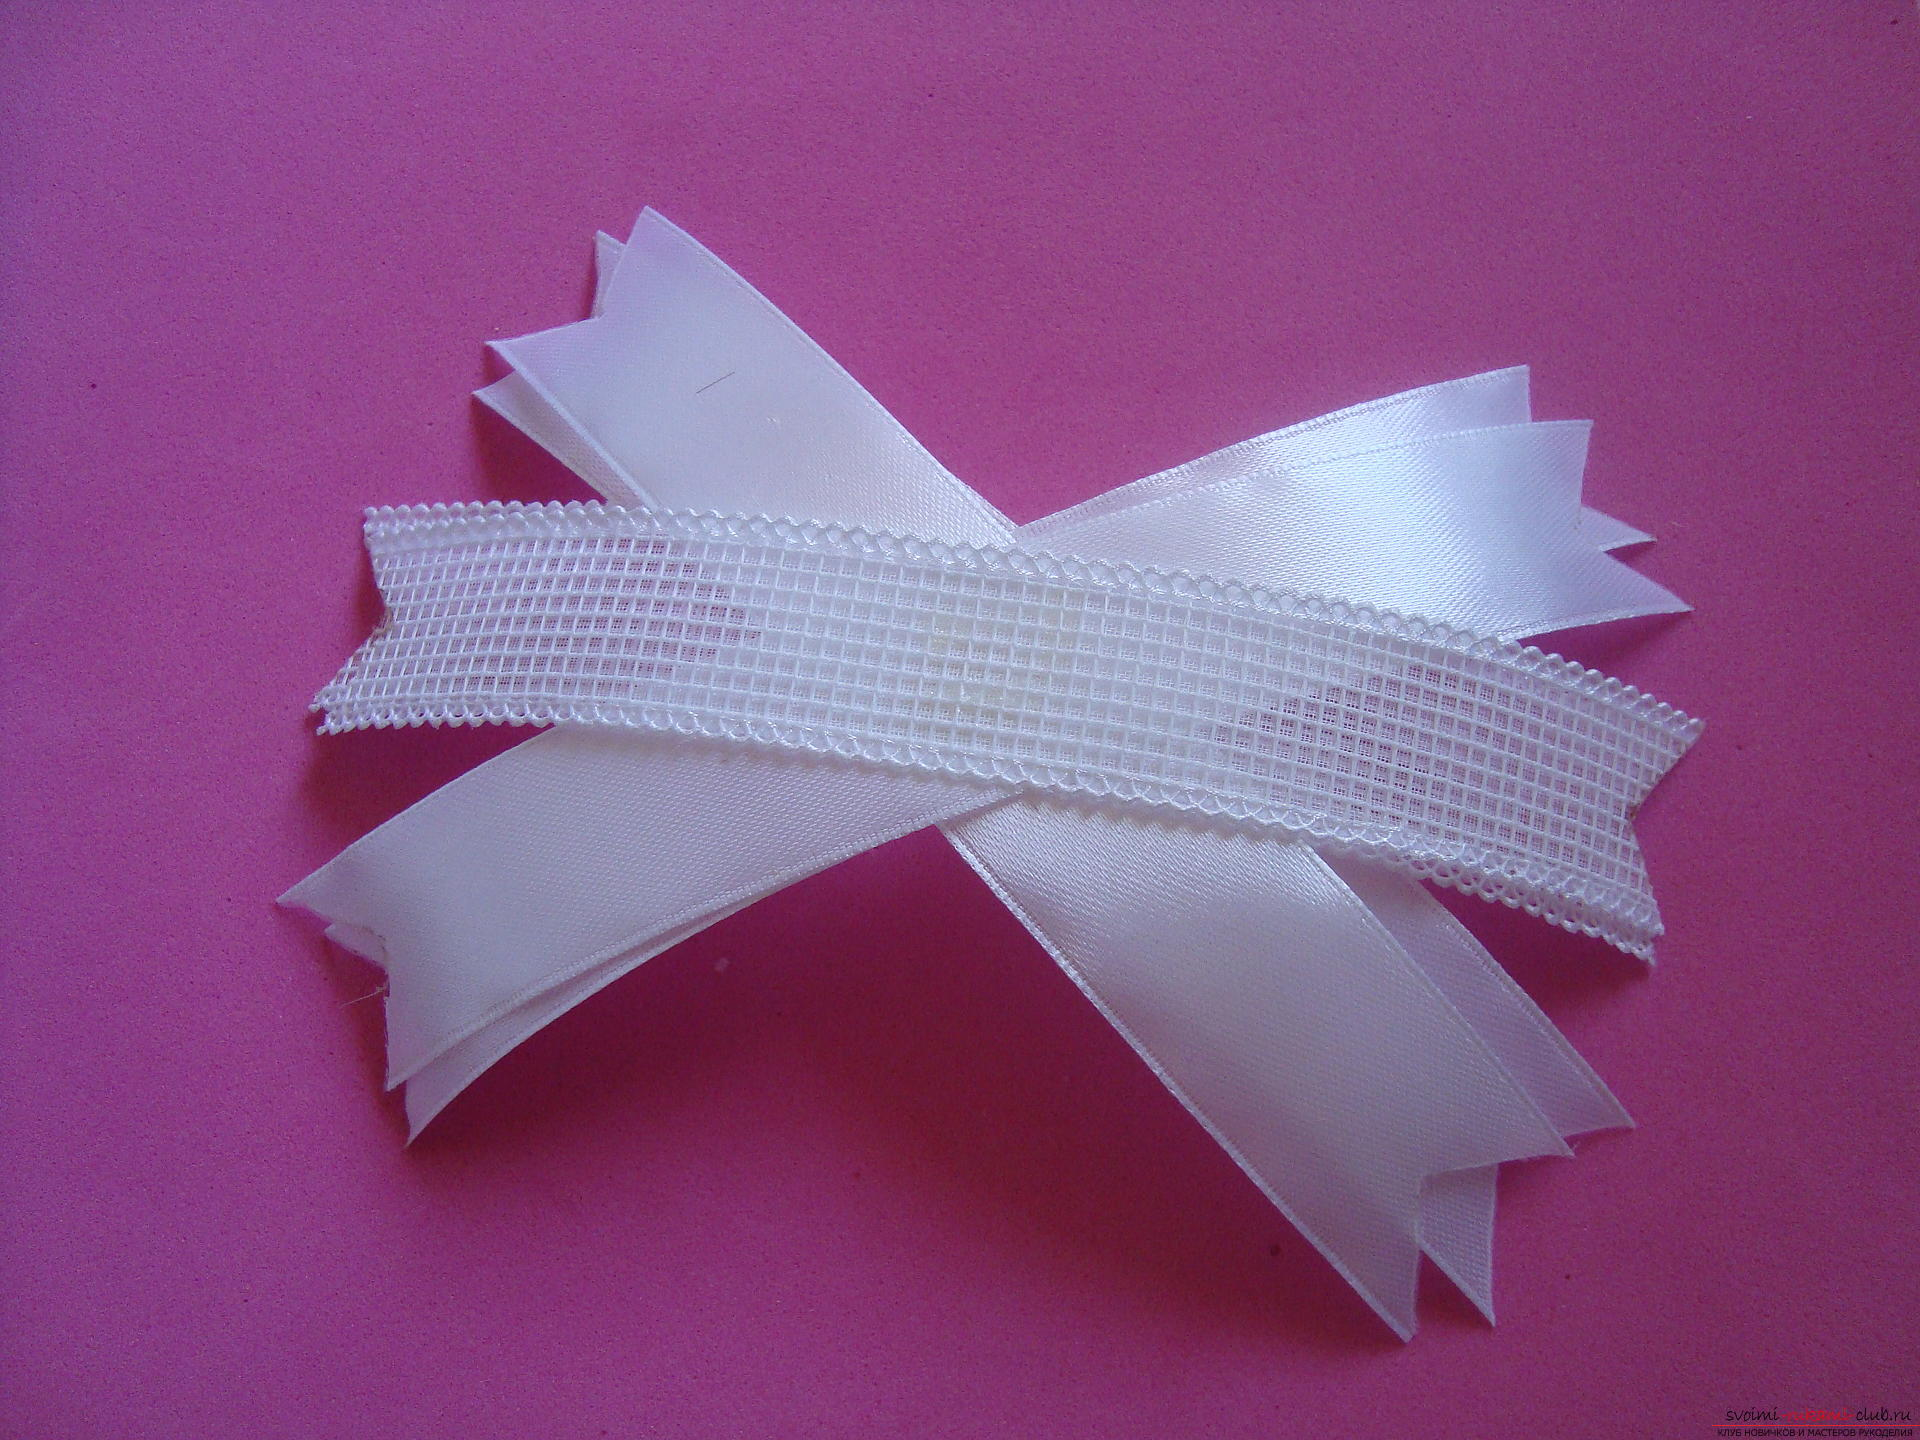 Step-by-step guide to making bows by September 1 for schoolgirls describing the steps and photos. Photo №5